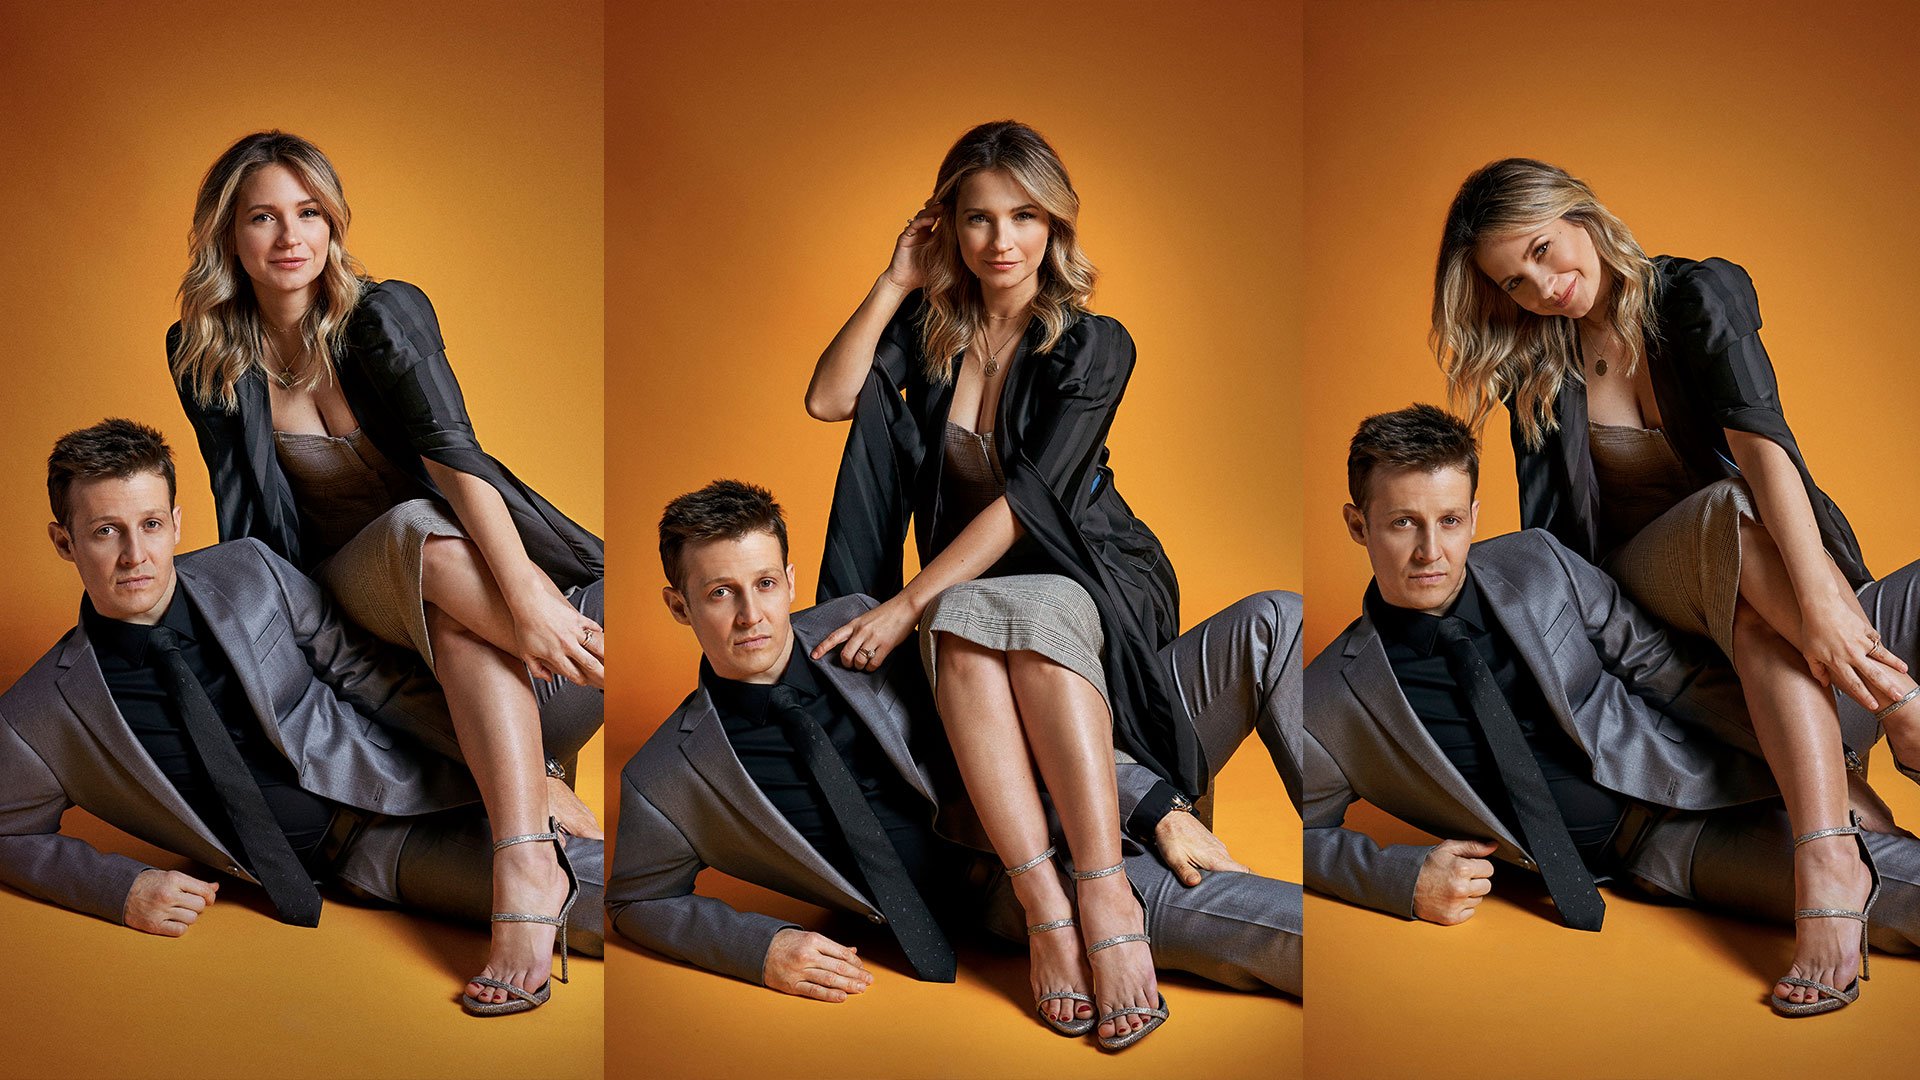 Will Estes and Vanessa Ray have great chemistry